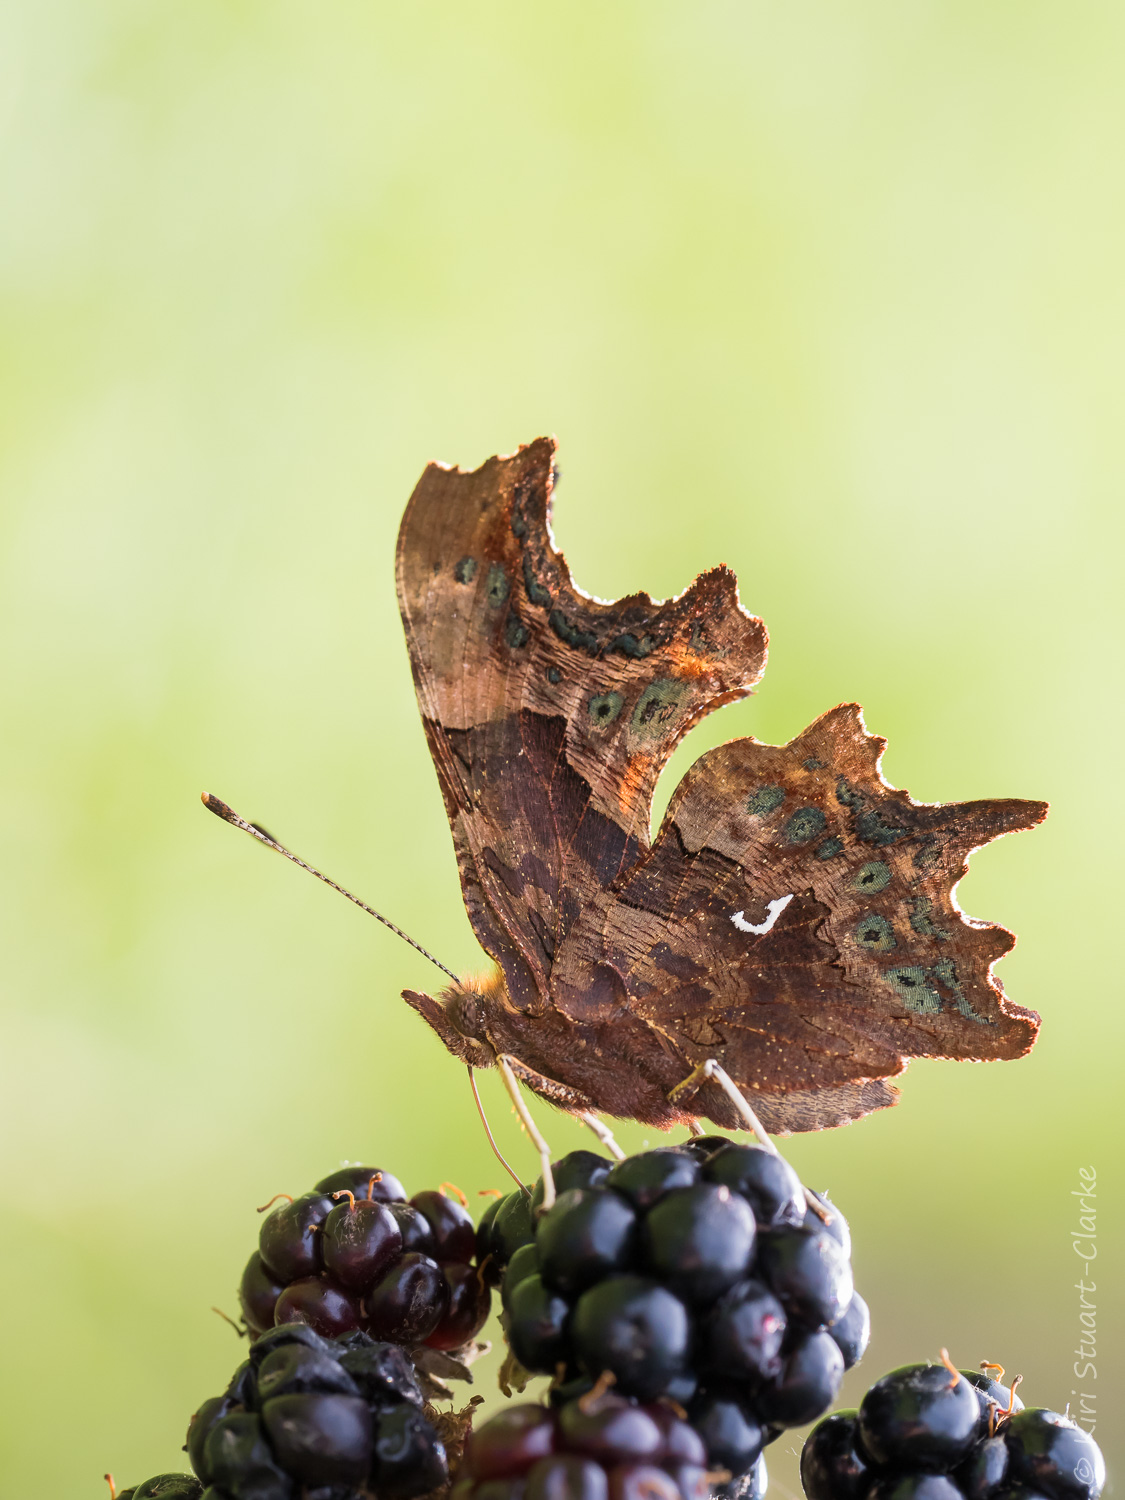 Comma butterfly feeding on blackberry